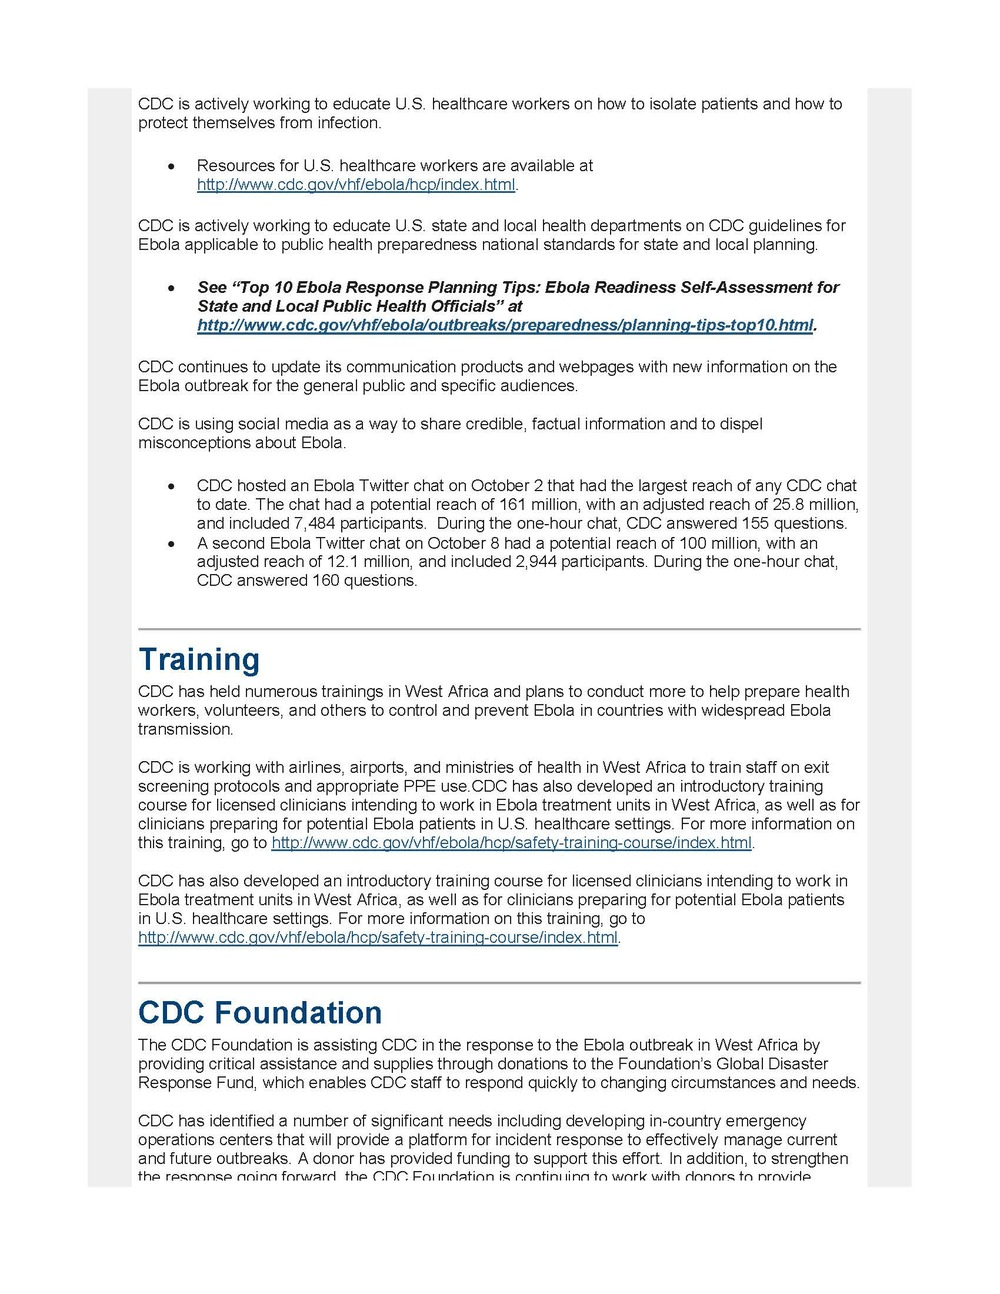 CDC Emergency Partners Update 2014 Ebola Response_Page_25.jpg